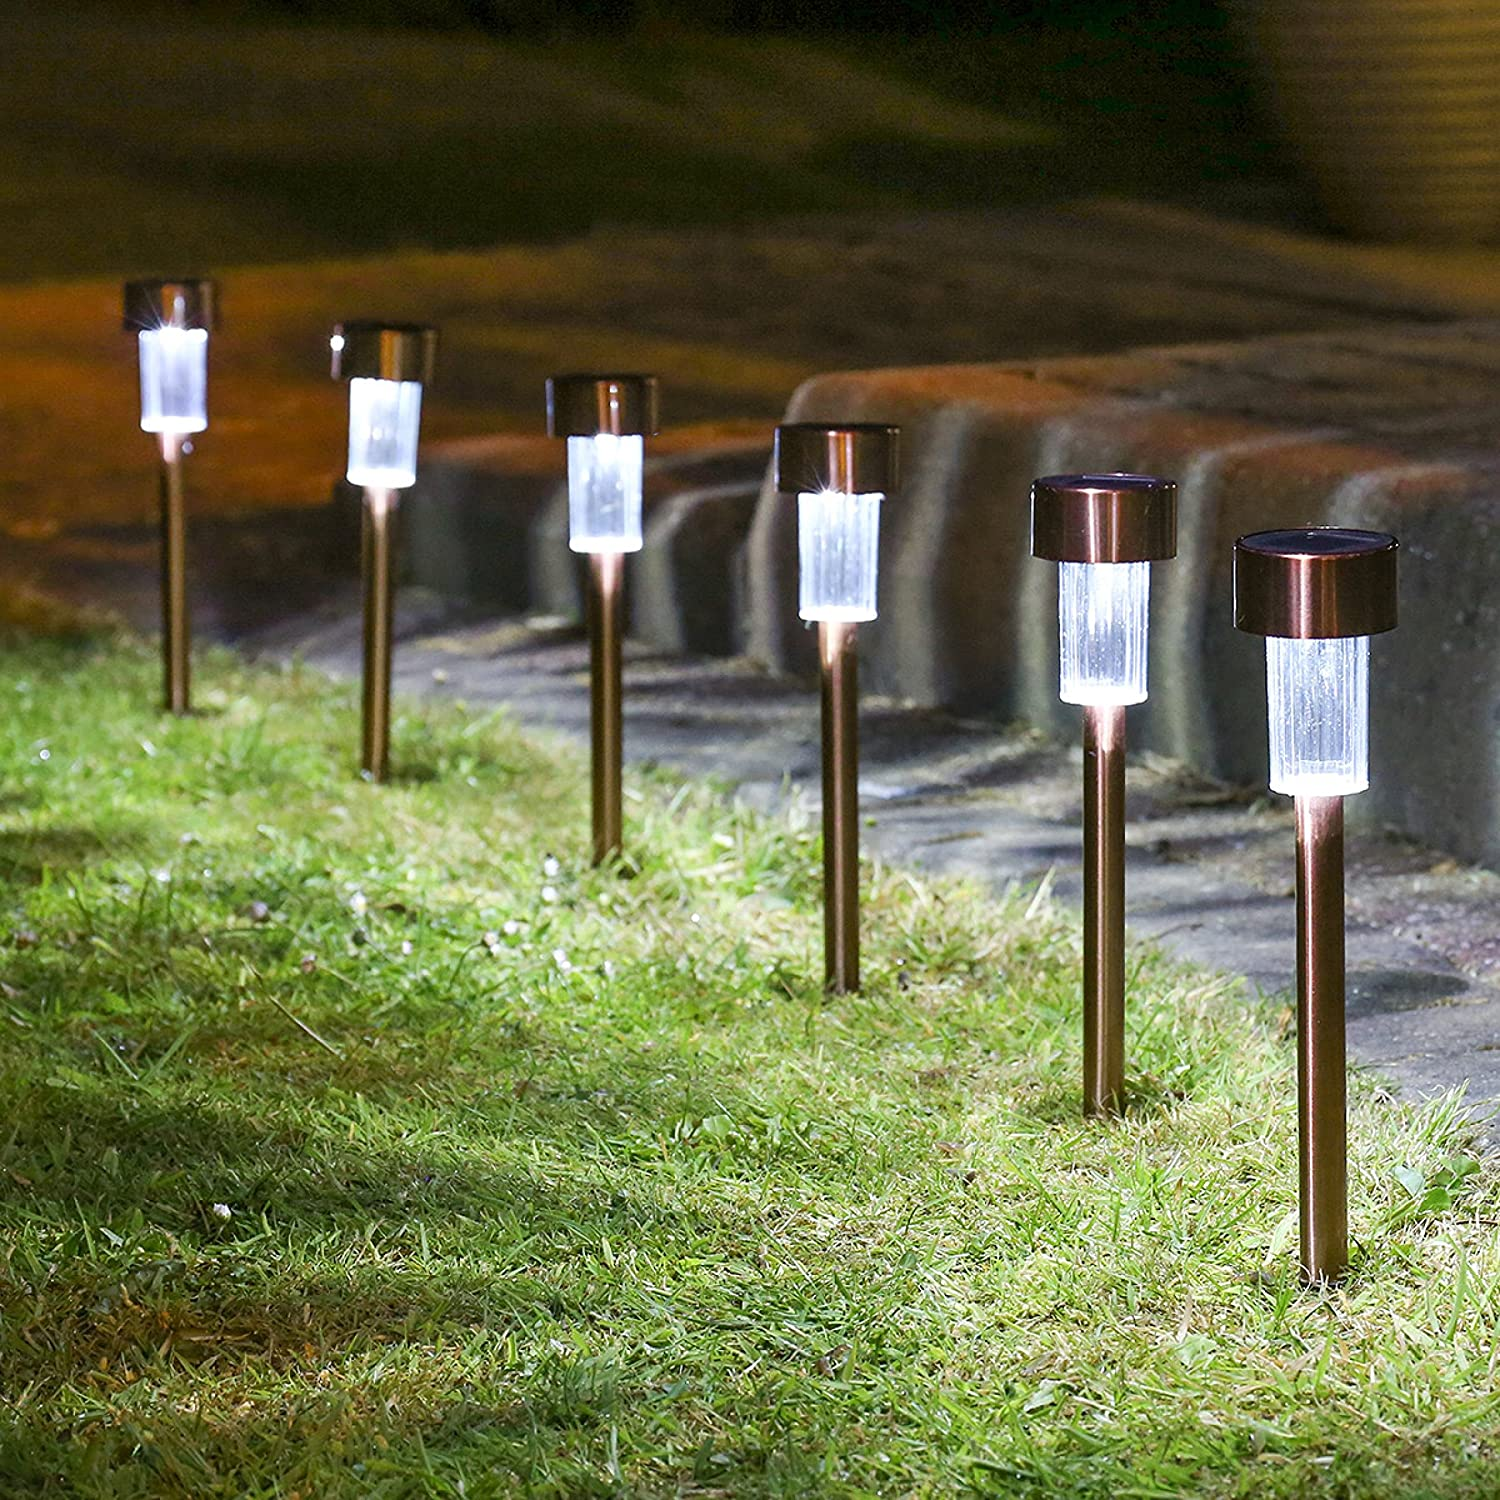 Ordinaire Amazon.com : Sogrand 12pcs Pack, Solar Lights Outdoor, Stainless Steel,  Solar Light, Landscape Lighting, Solar Pathway Lights, For Lawn, Patio,  Yard, ...